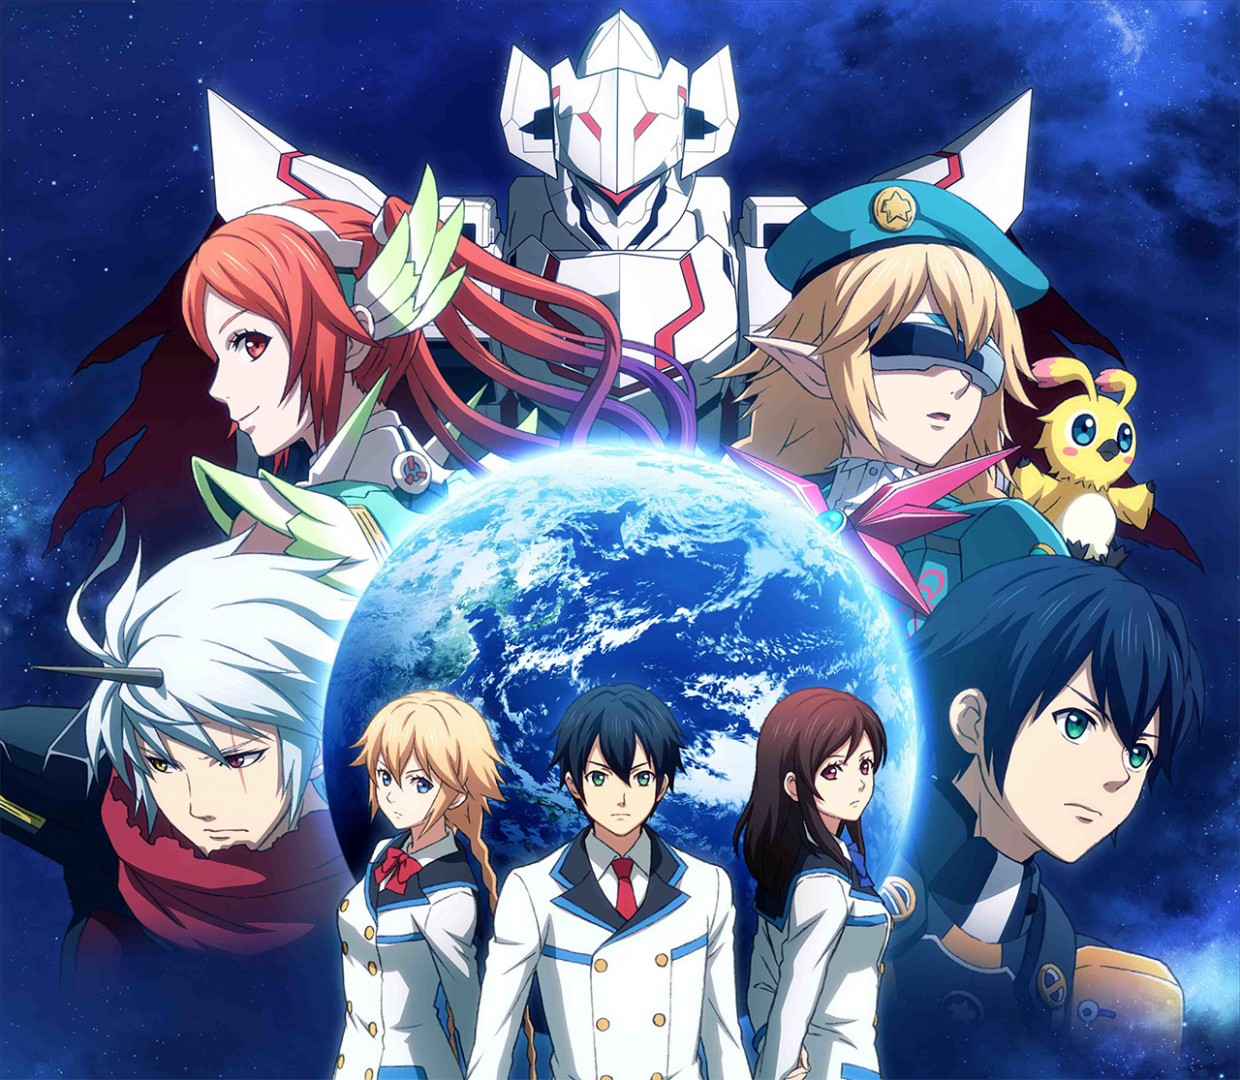 Phantasy-Star-Online-2-anime